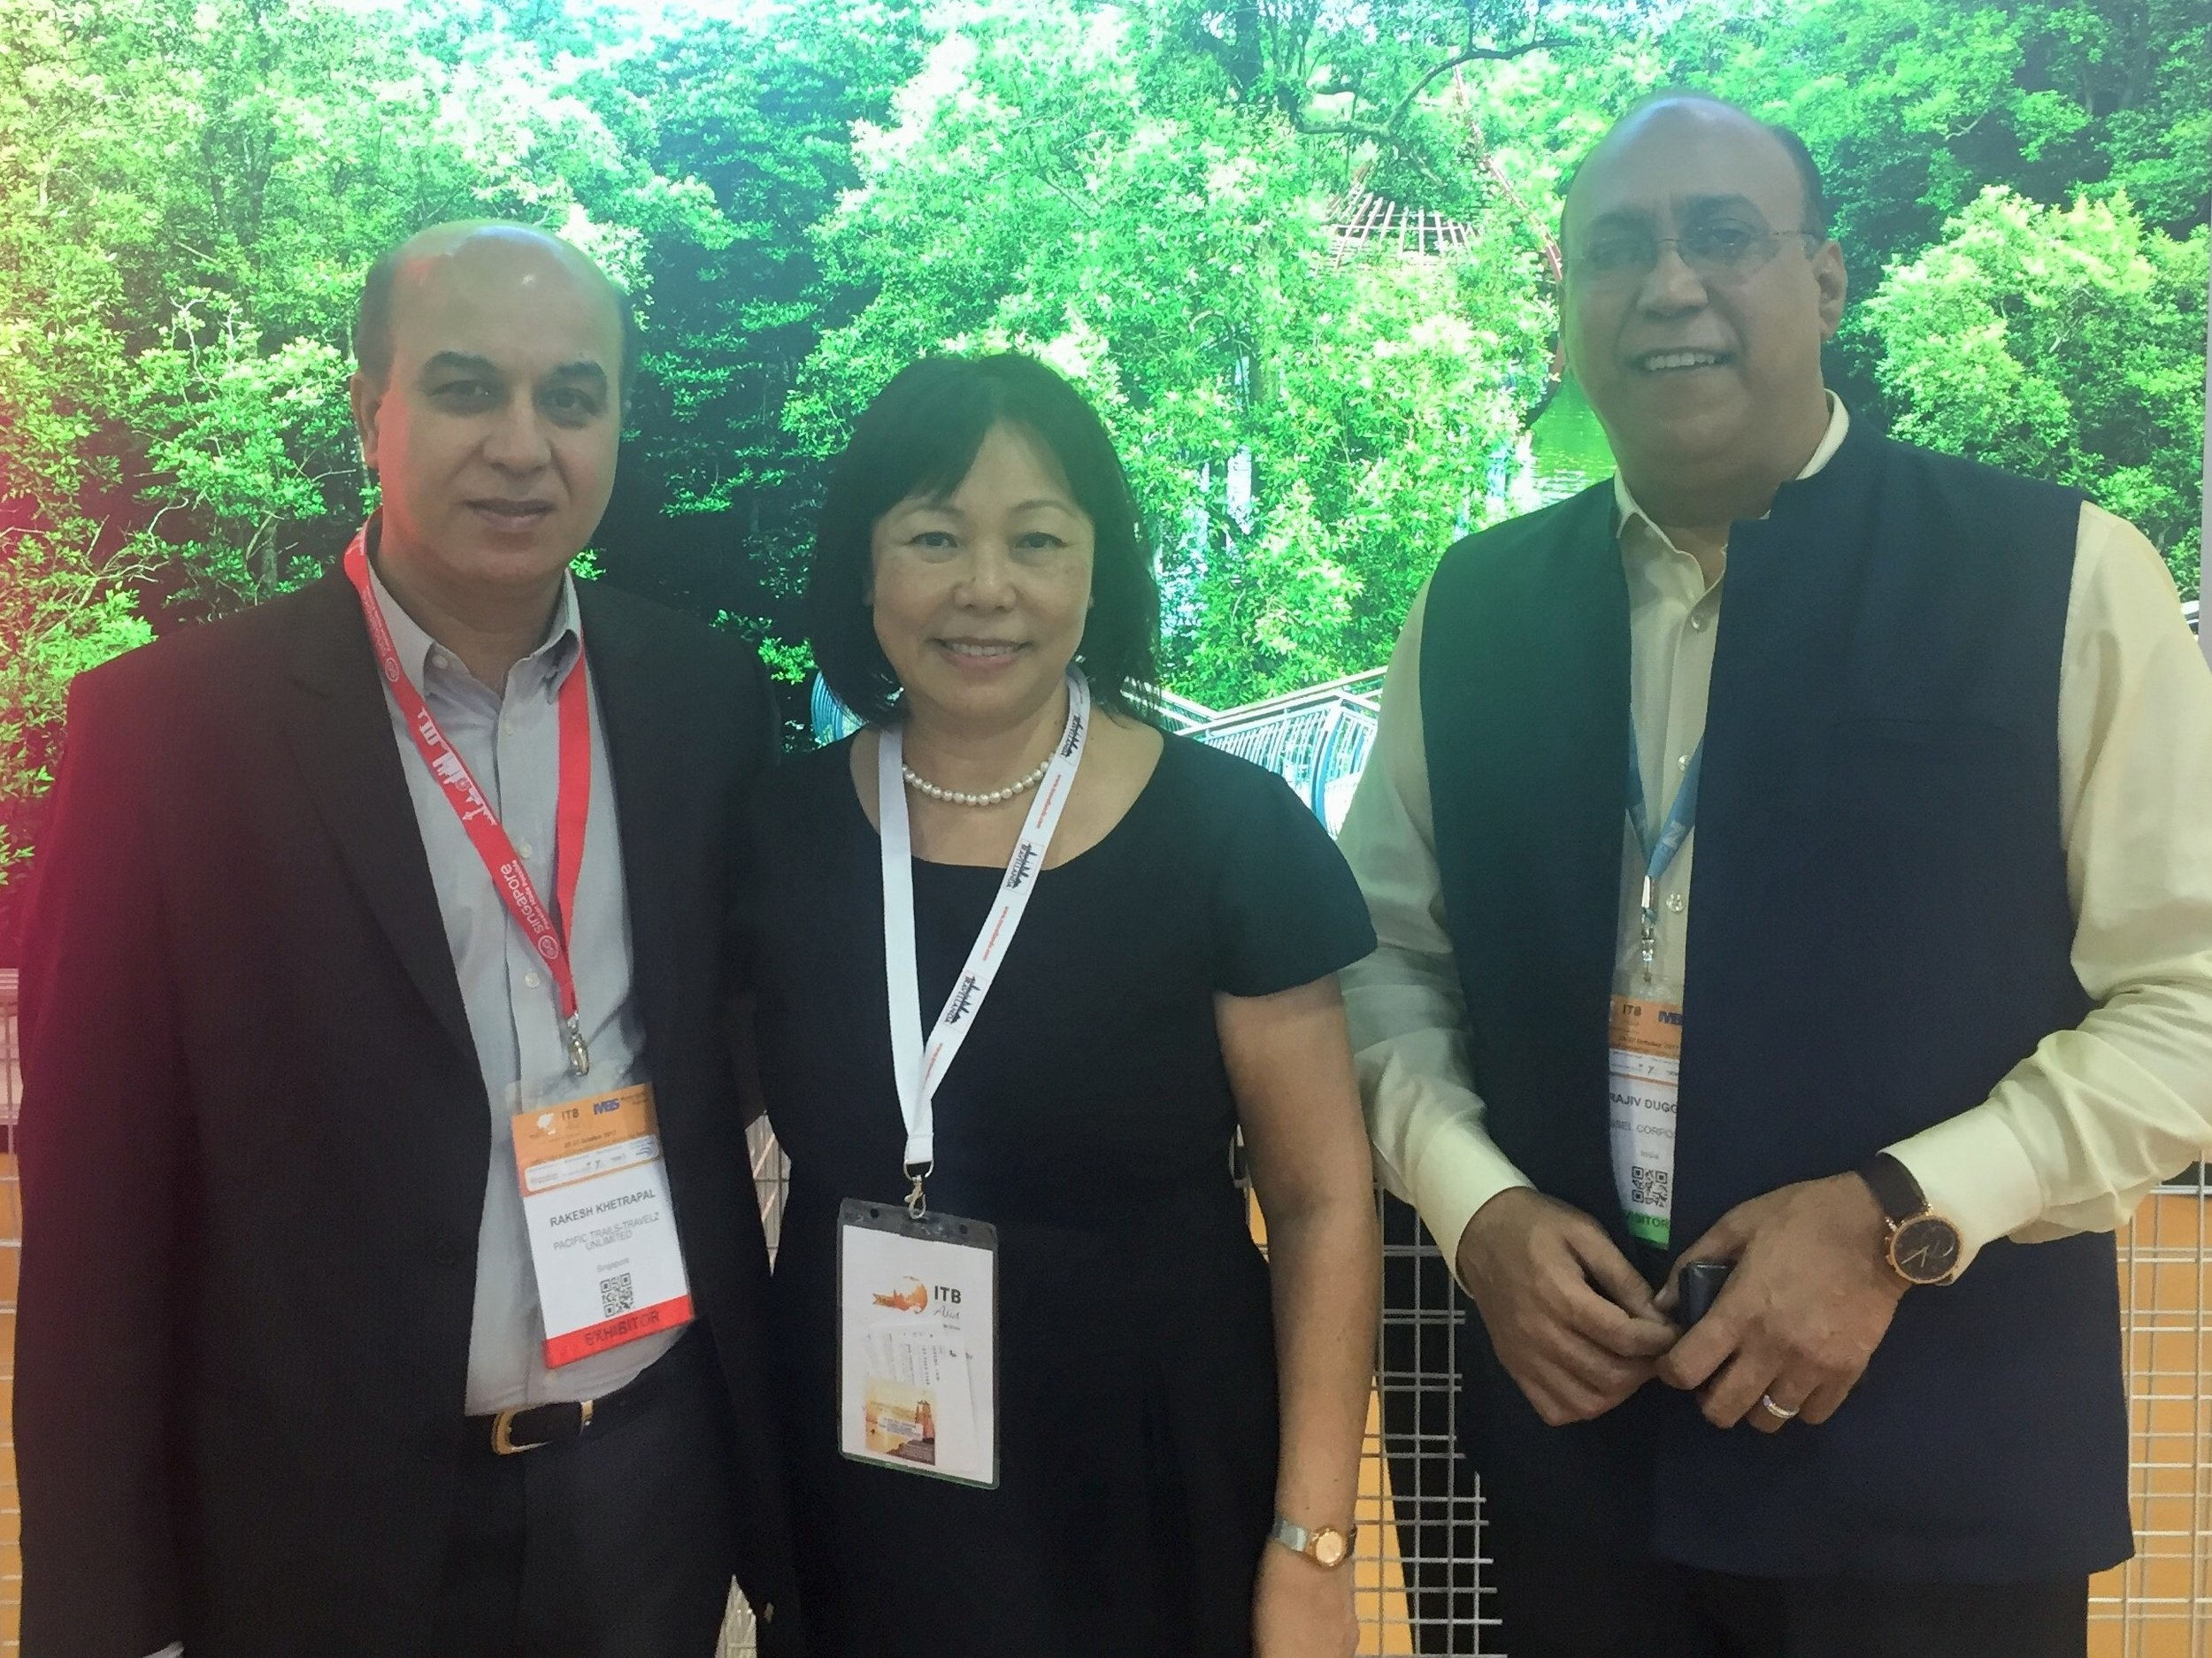 From left to right:  Mr Rakesh Khetrapal (MD, Pacific Trails - Travelz Unlimited), Ms Serene Law (VP, FLA), Mr Rajiv Duggal (CEO - Tourism Business, Eseel Corporate Resources).